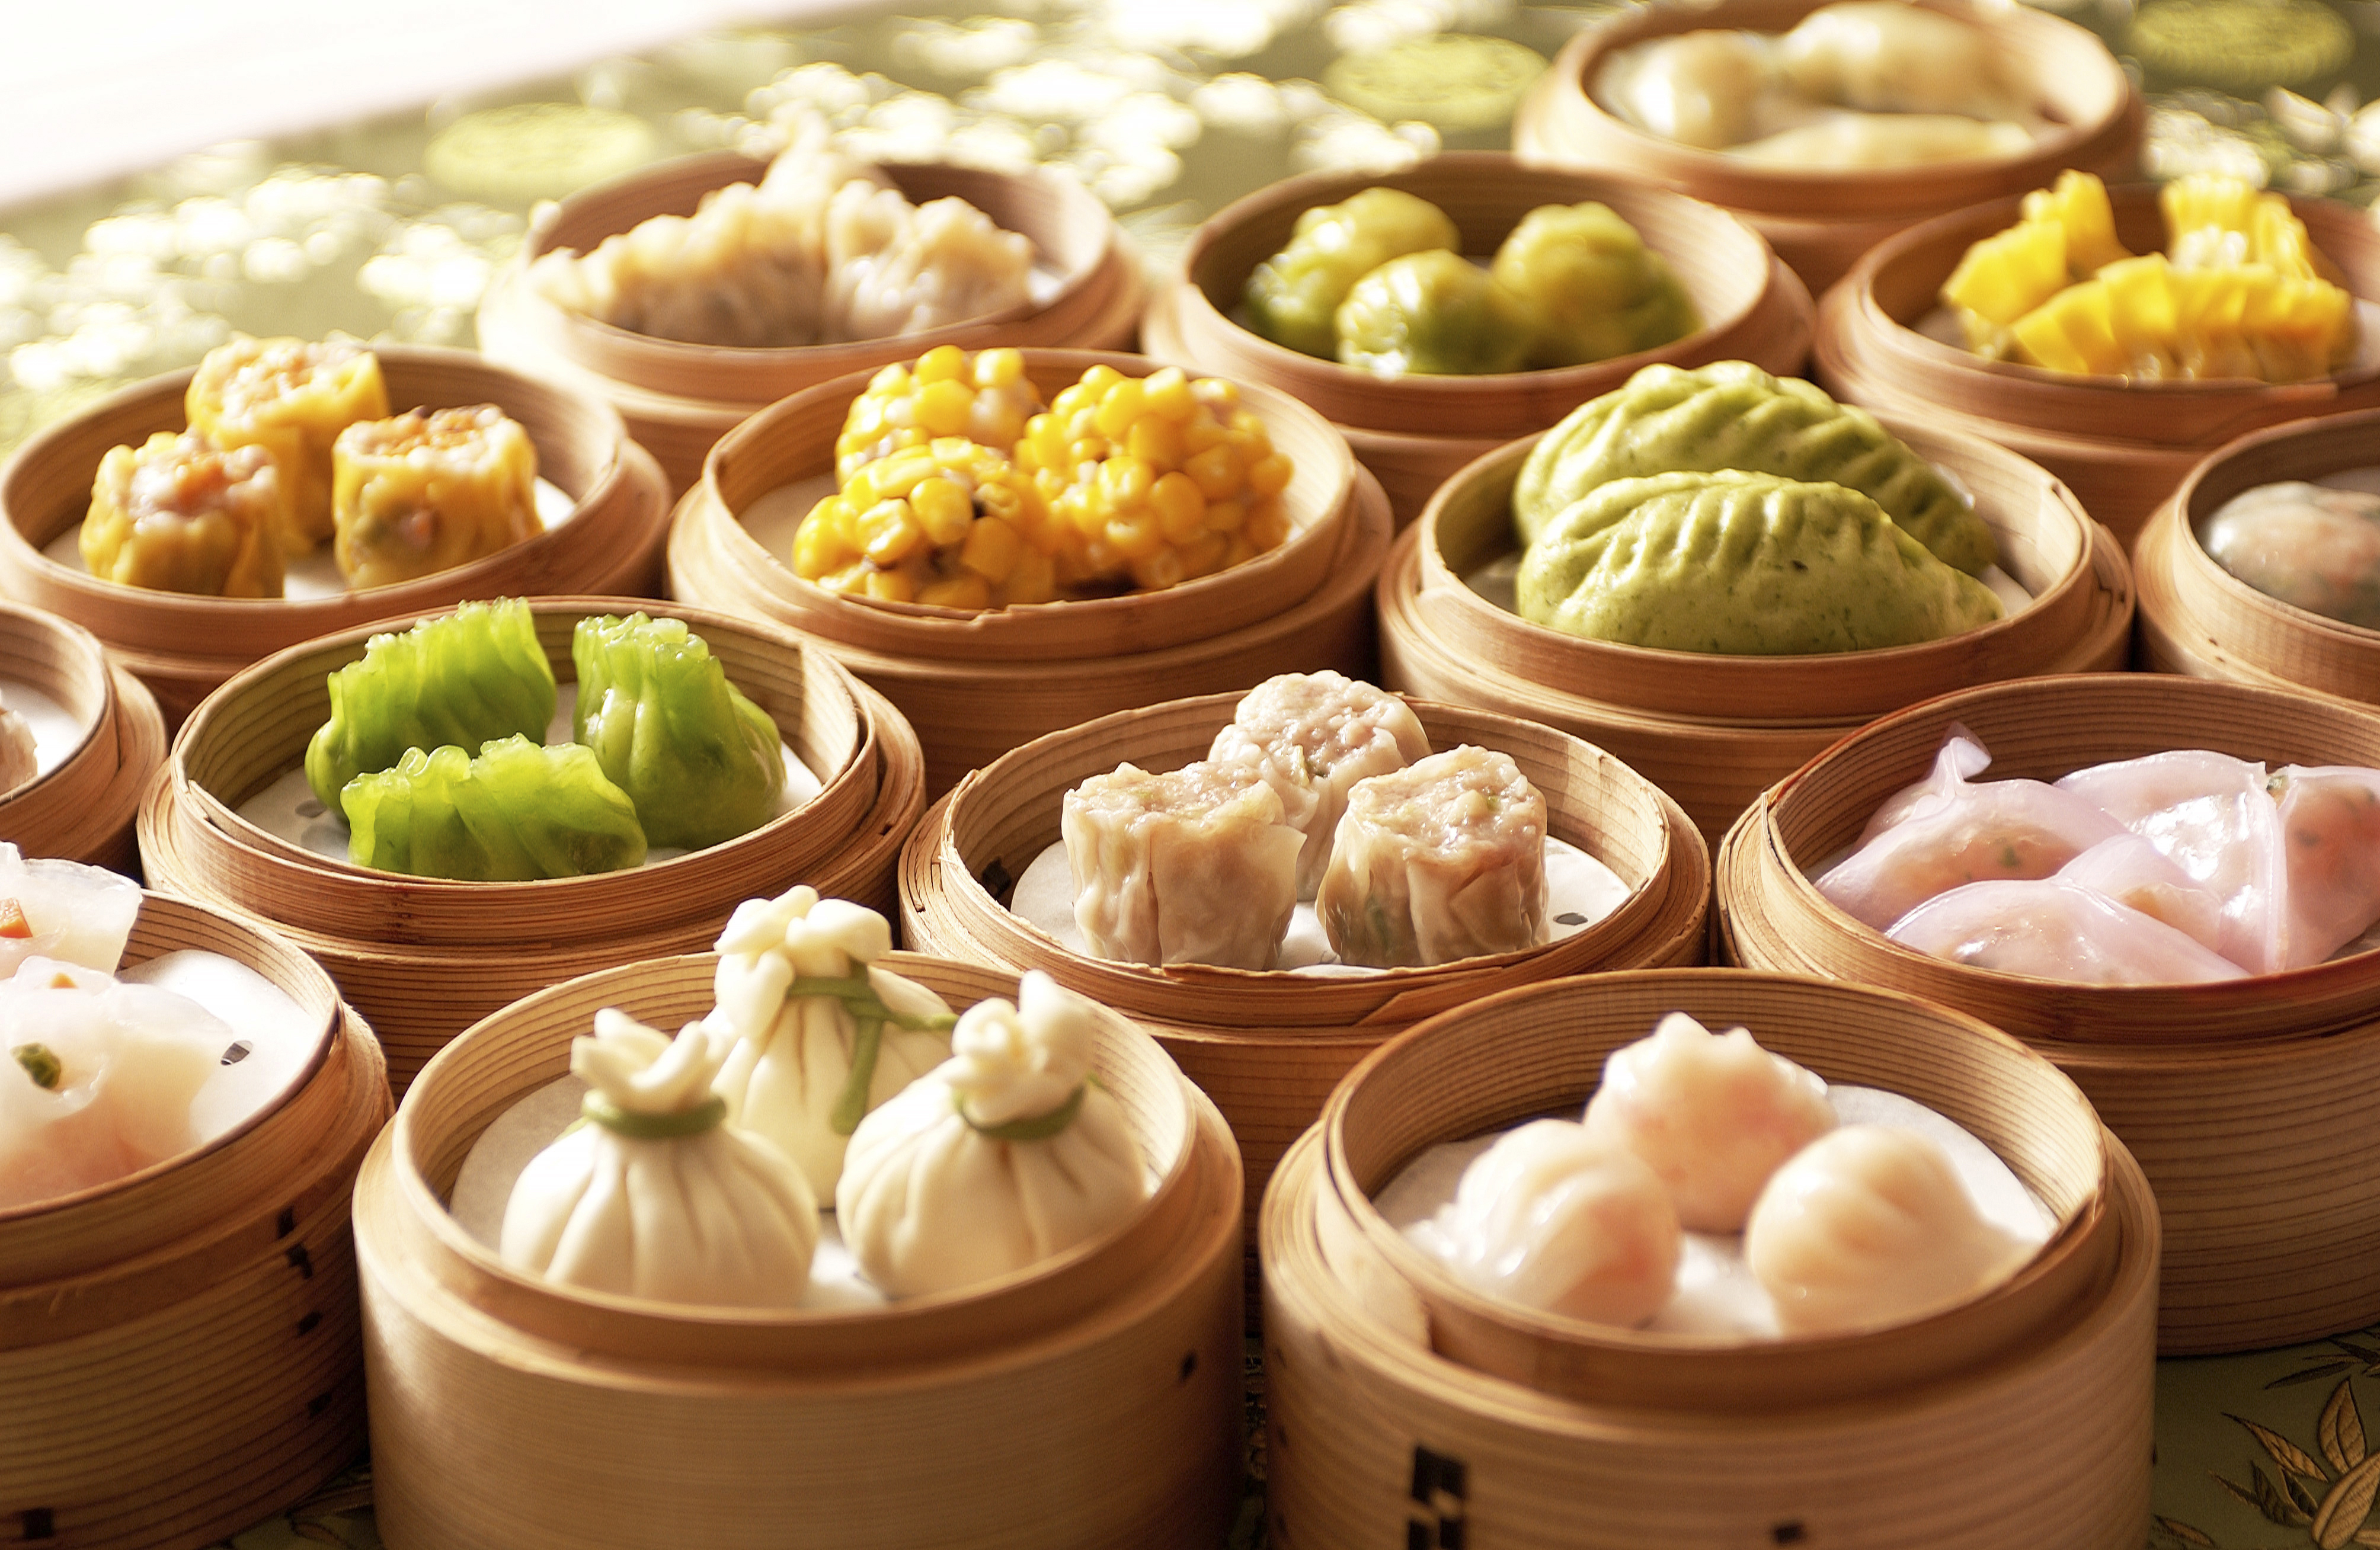 Pink, yellow, and green dumplings sit in steamers.